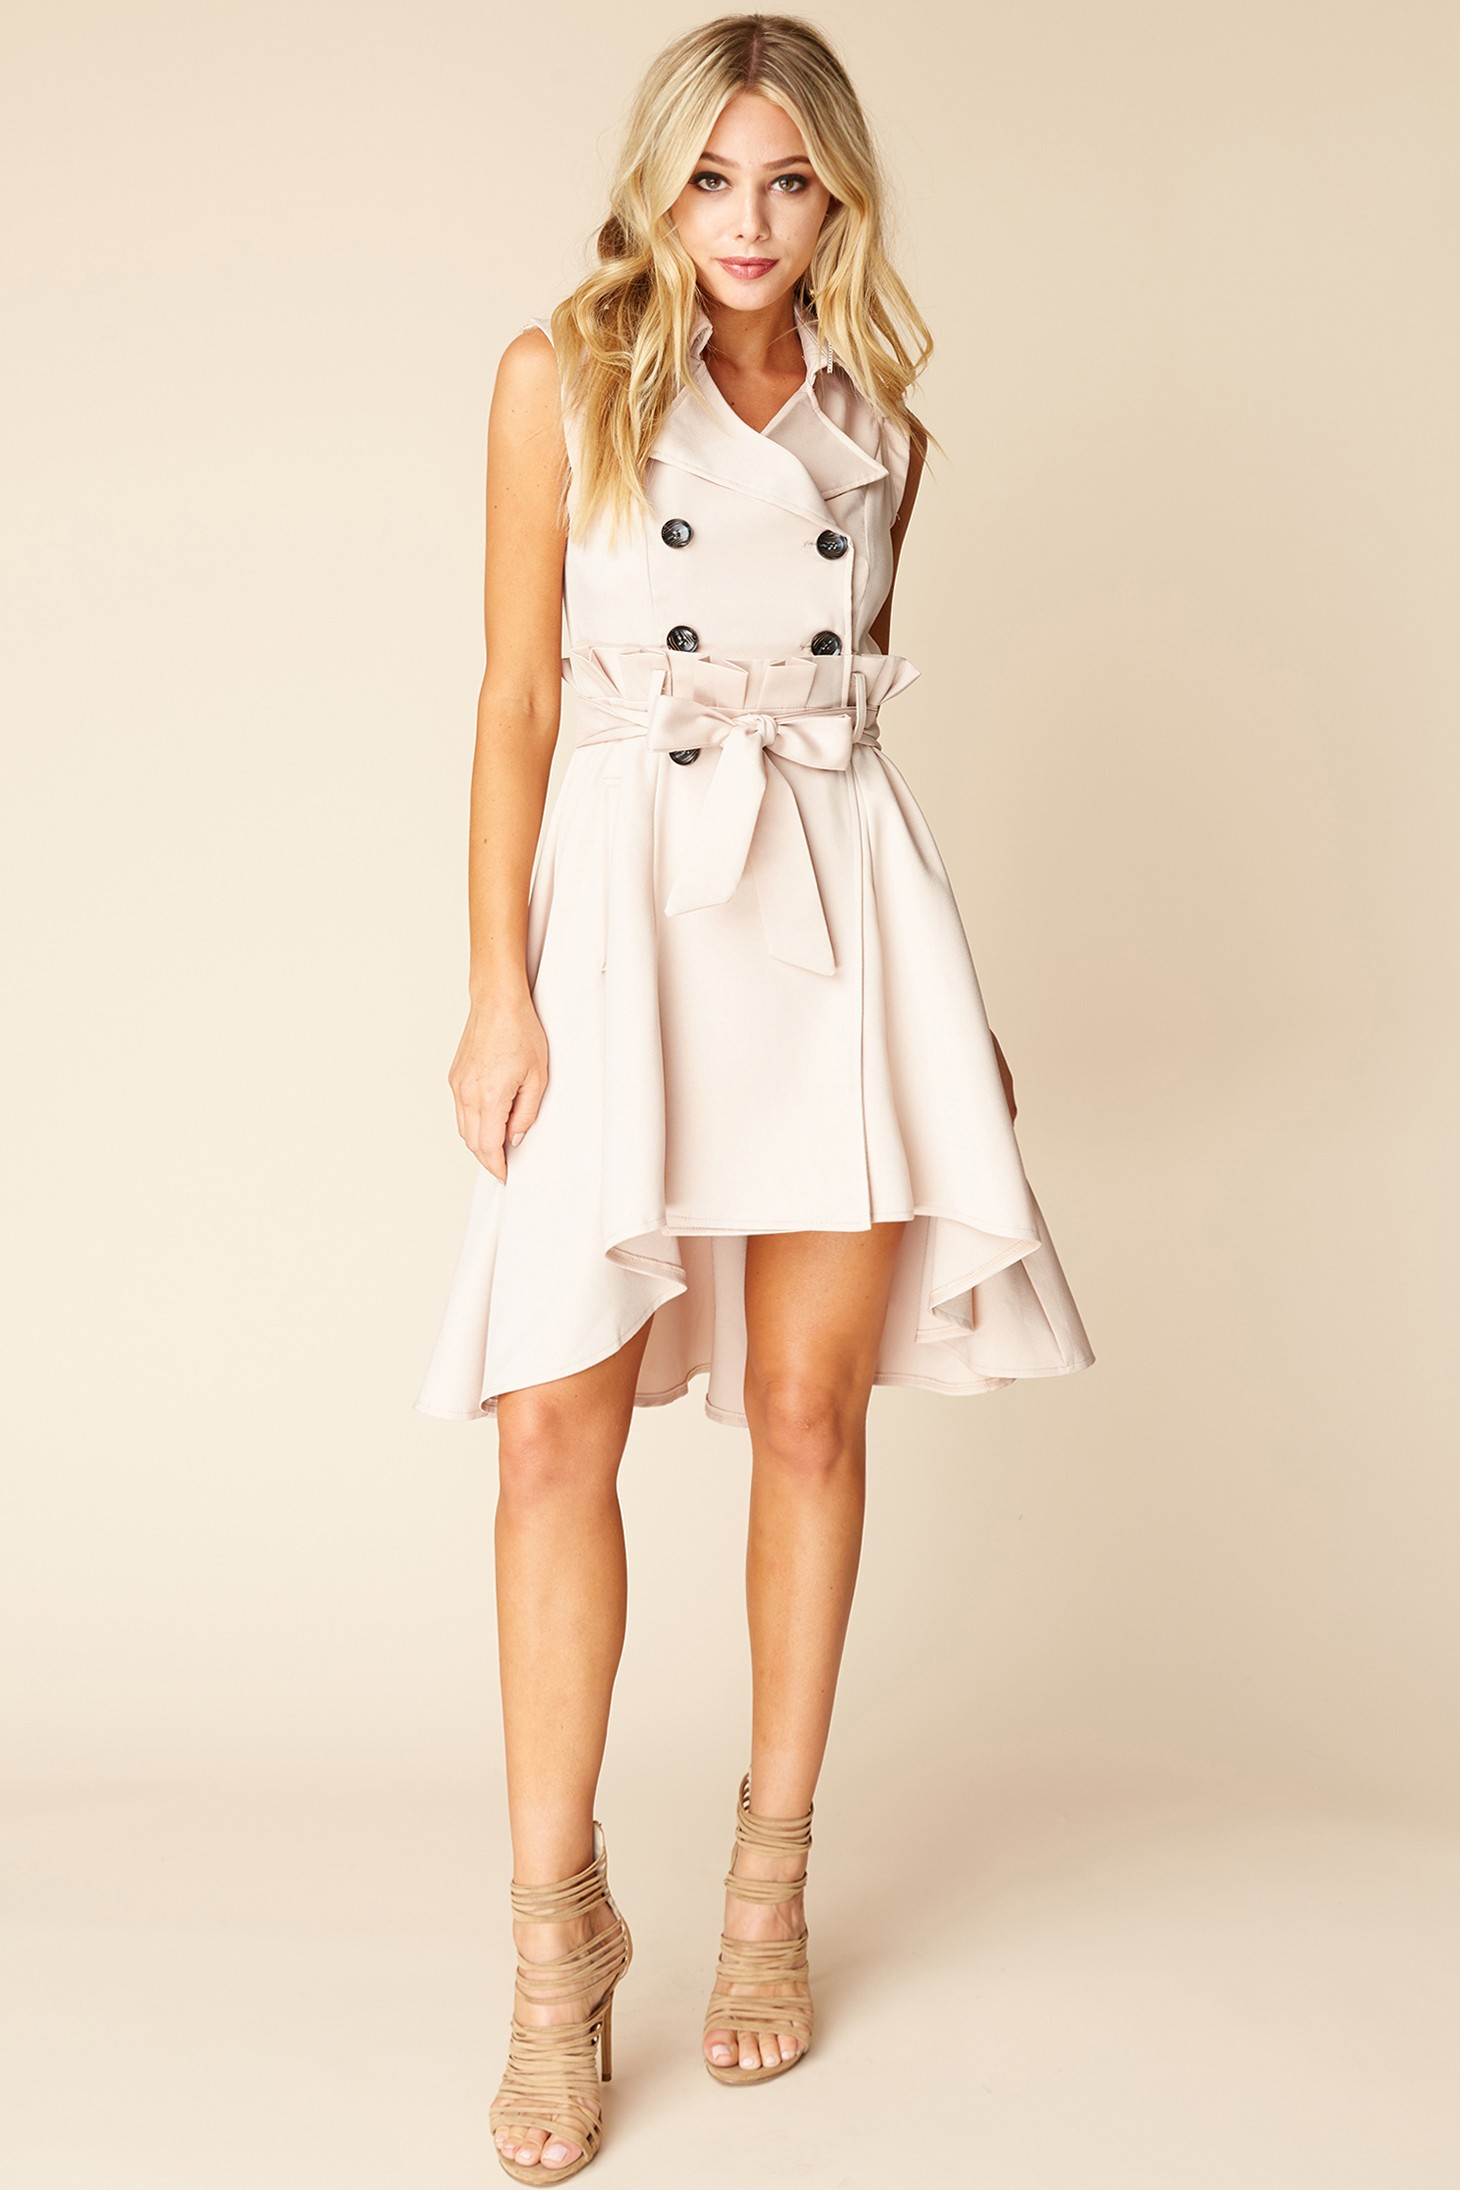 Dresses to Get You Through Easter - White Dress, belted dress // Notjessfashion.com